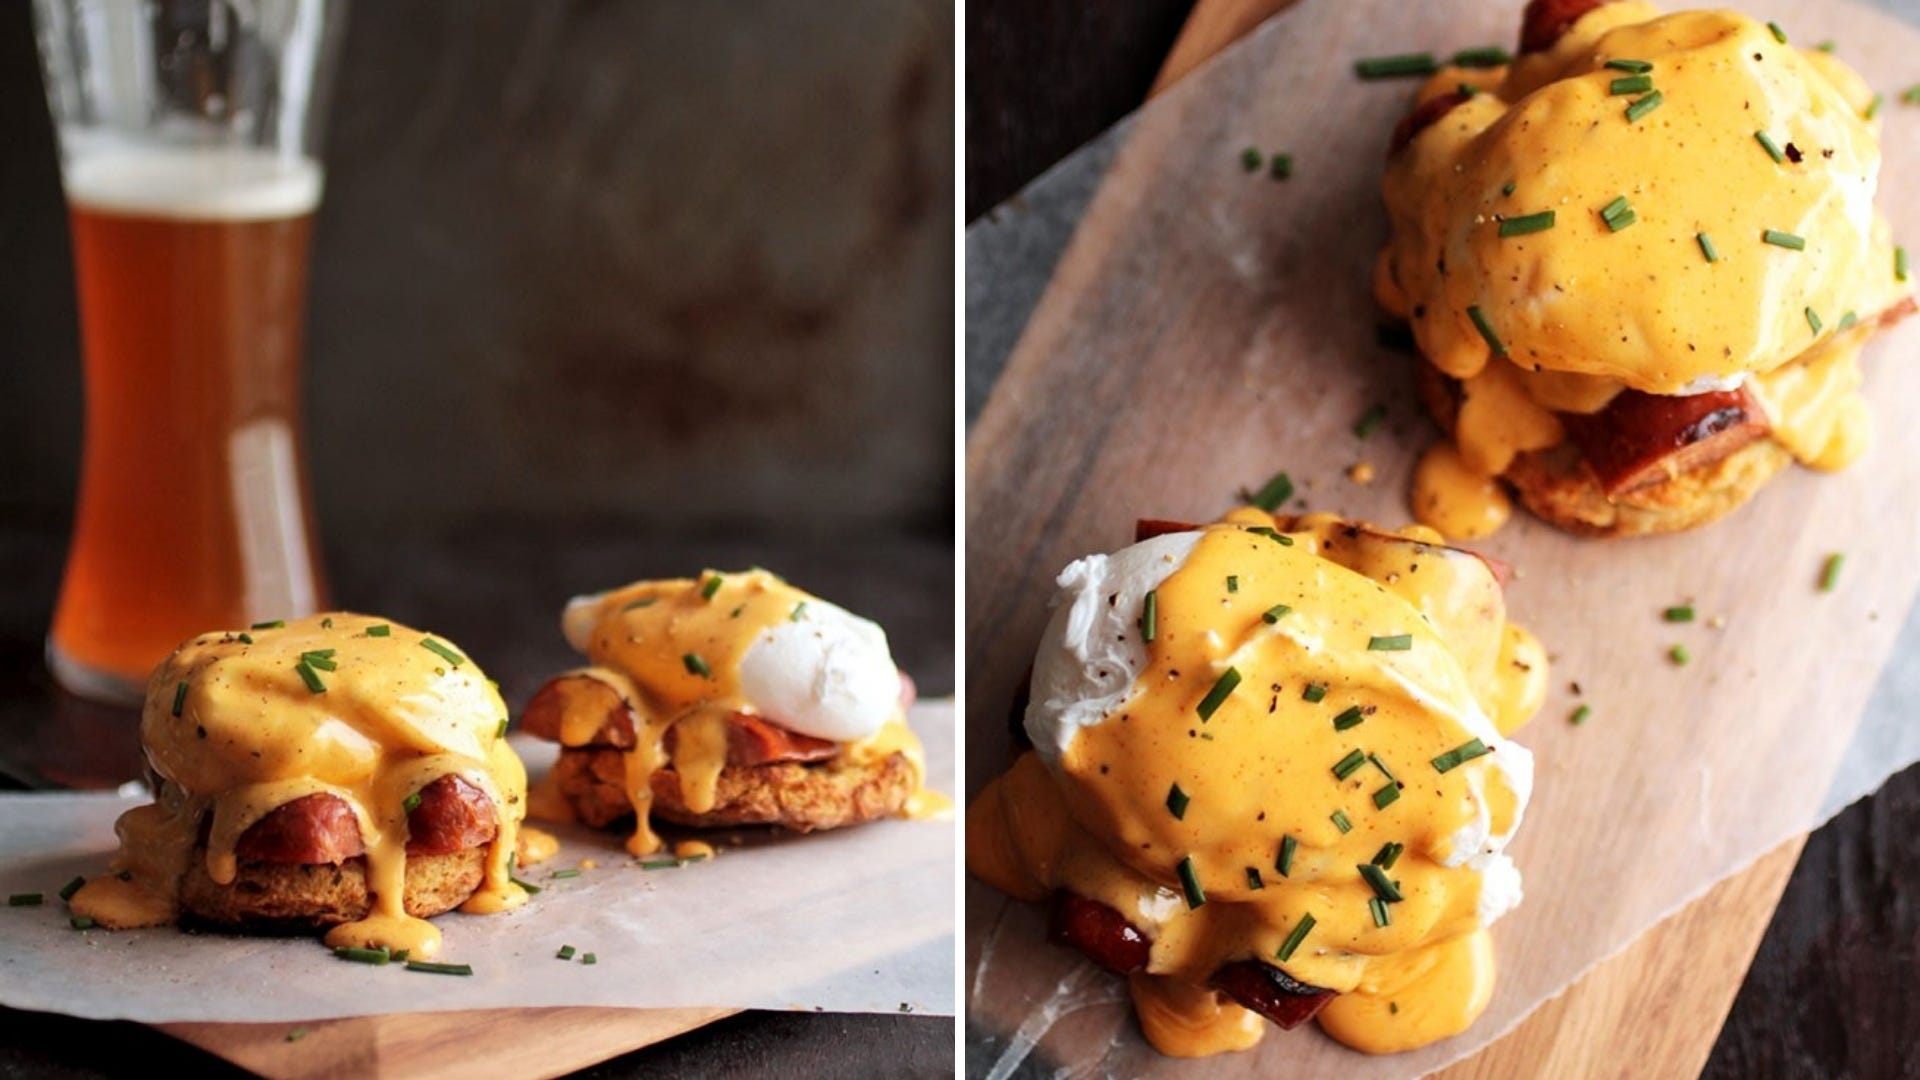 An Eggs Benedict dish sits on a wooden board with a orange sauce on top.